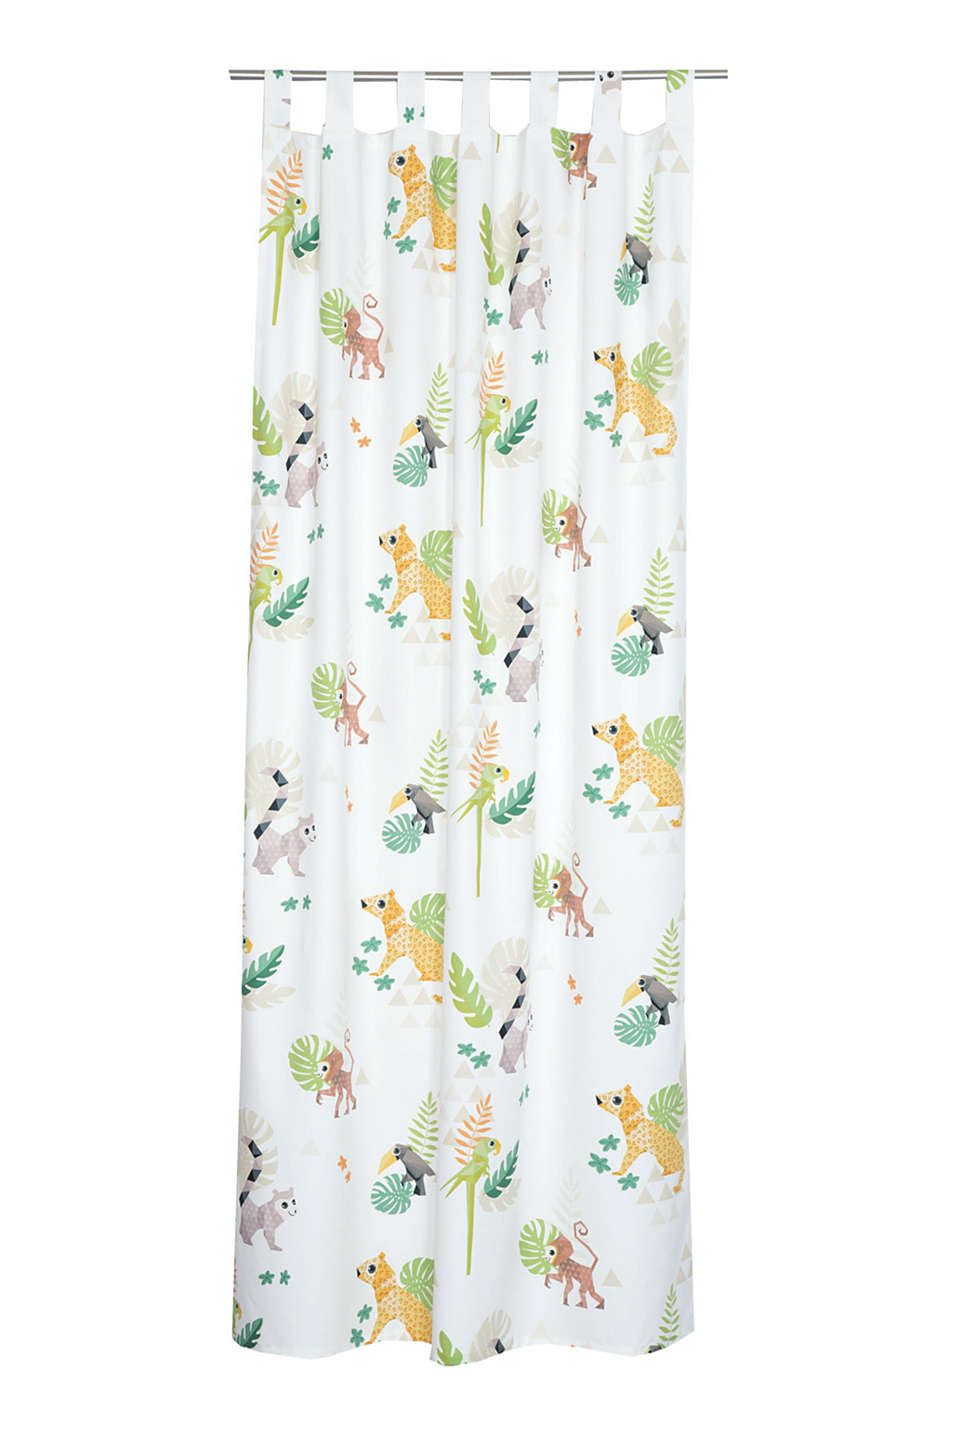 Esprit - Kids tab top curtain, blended cotton